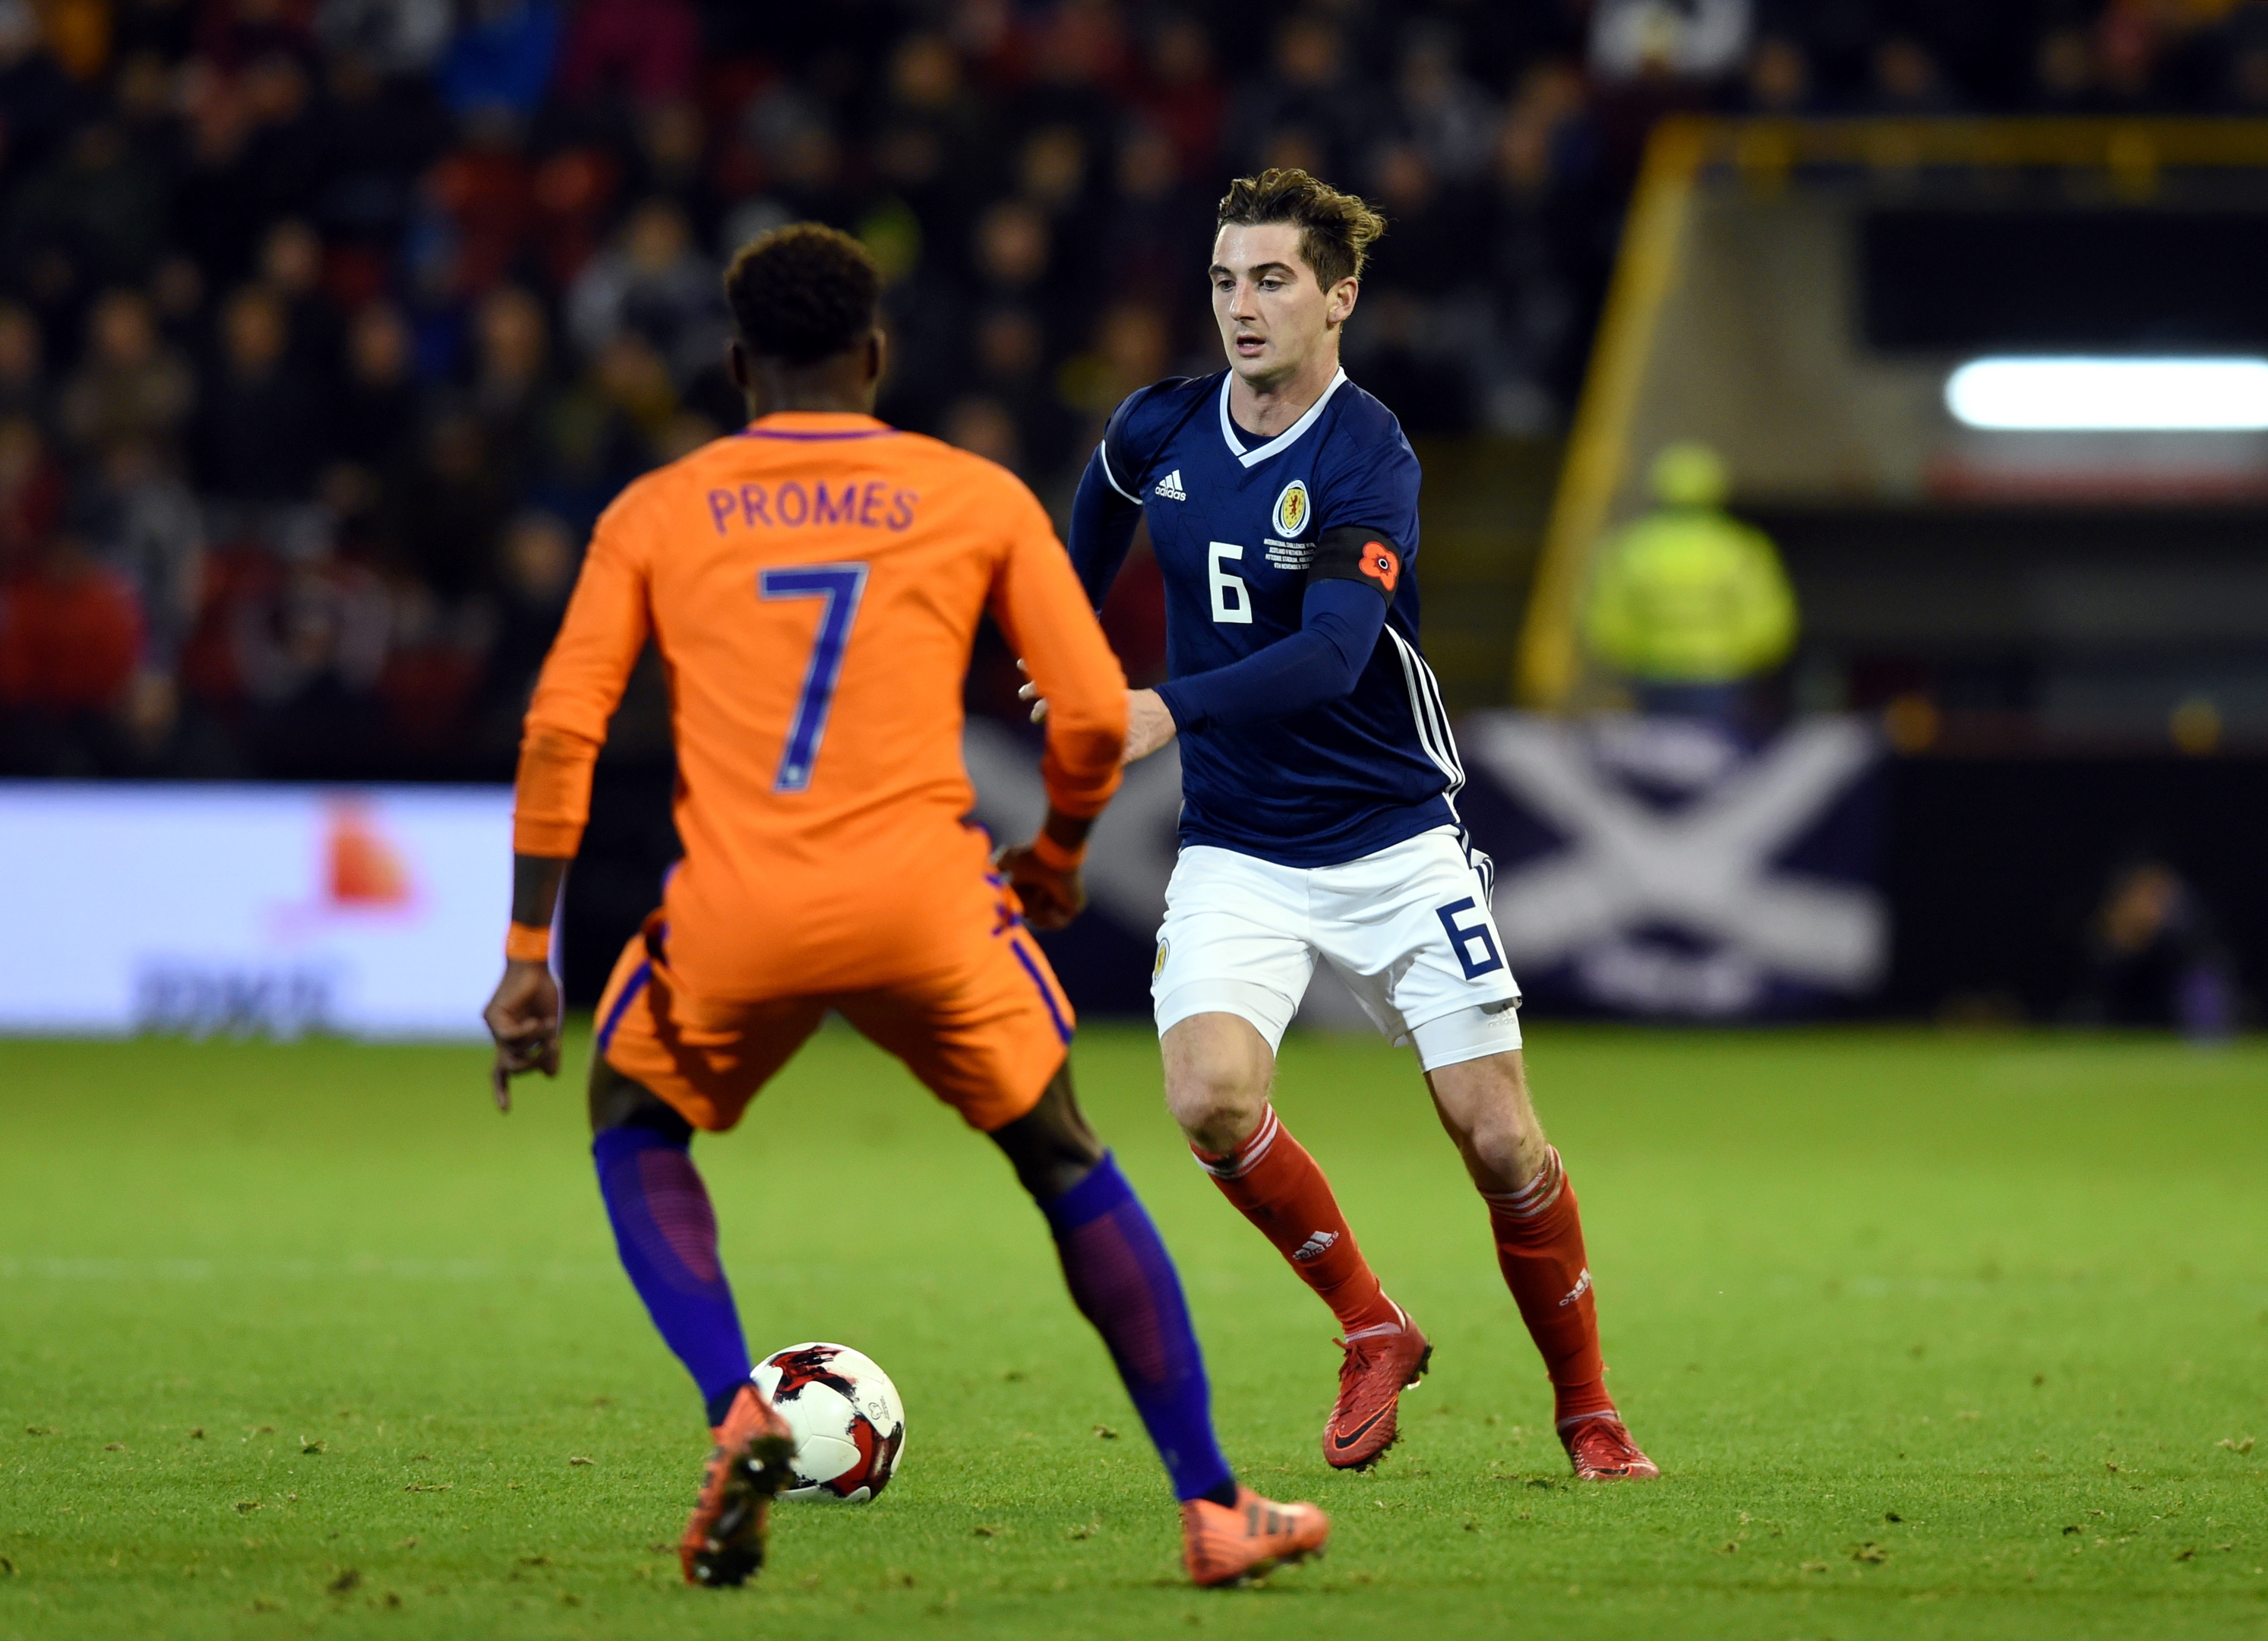 Pictured are Scotland's Kenny McLean and Holland's Quincy Promes. Picture by DARRELL BENNS